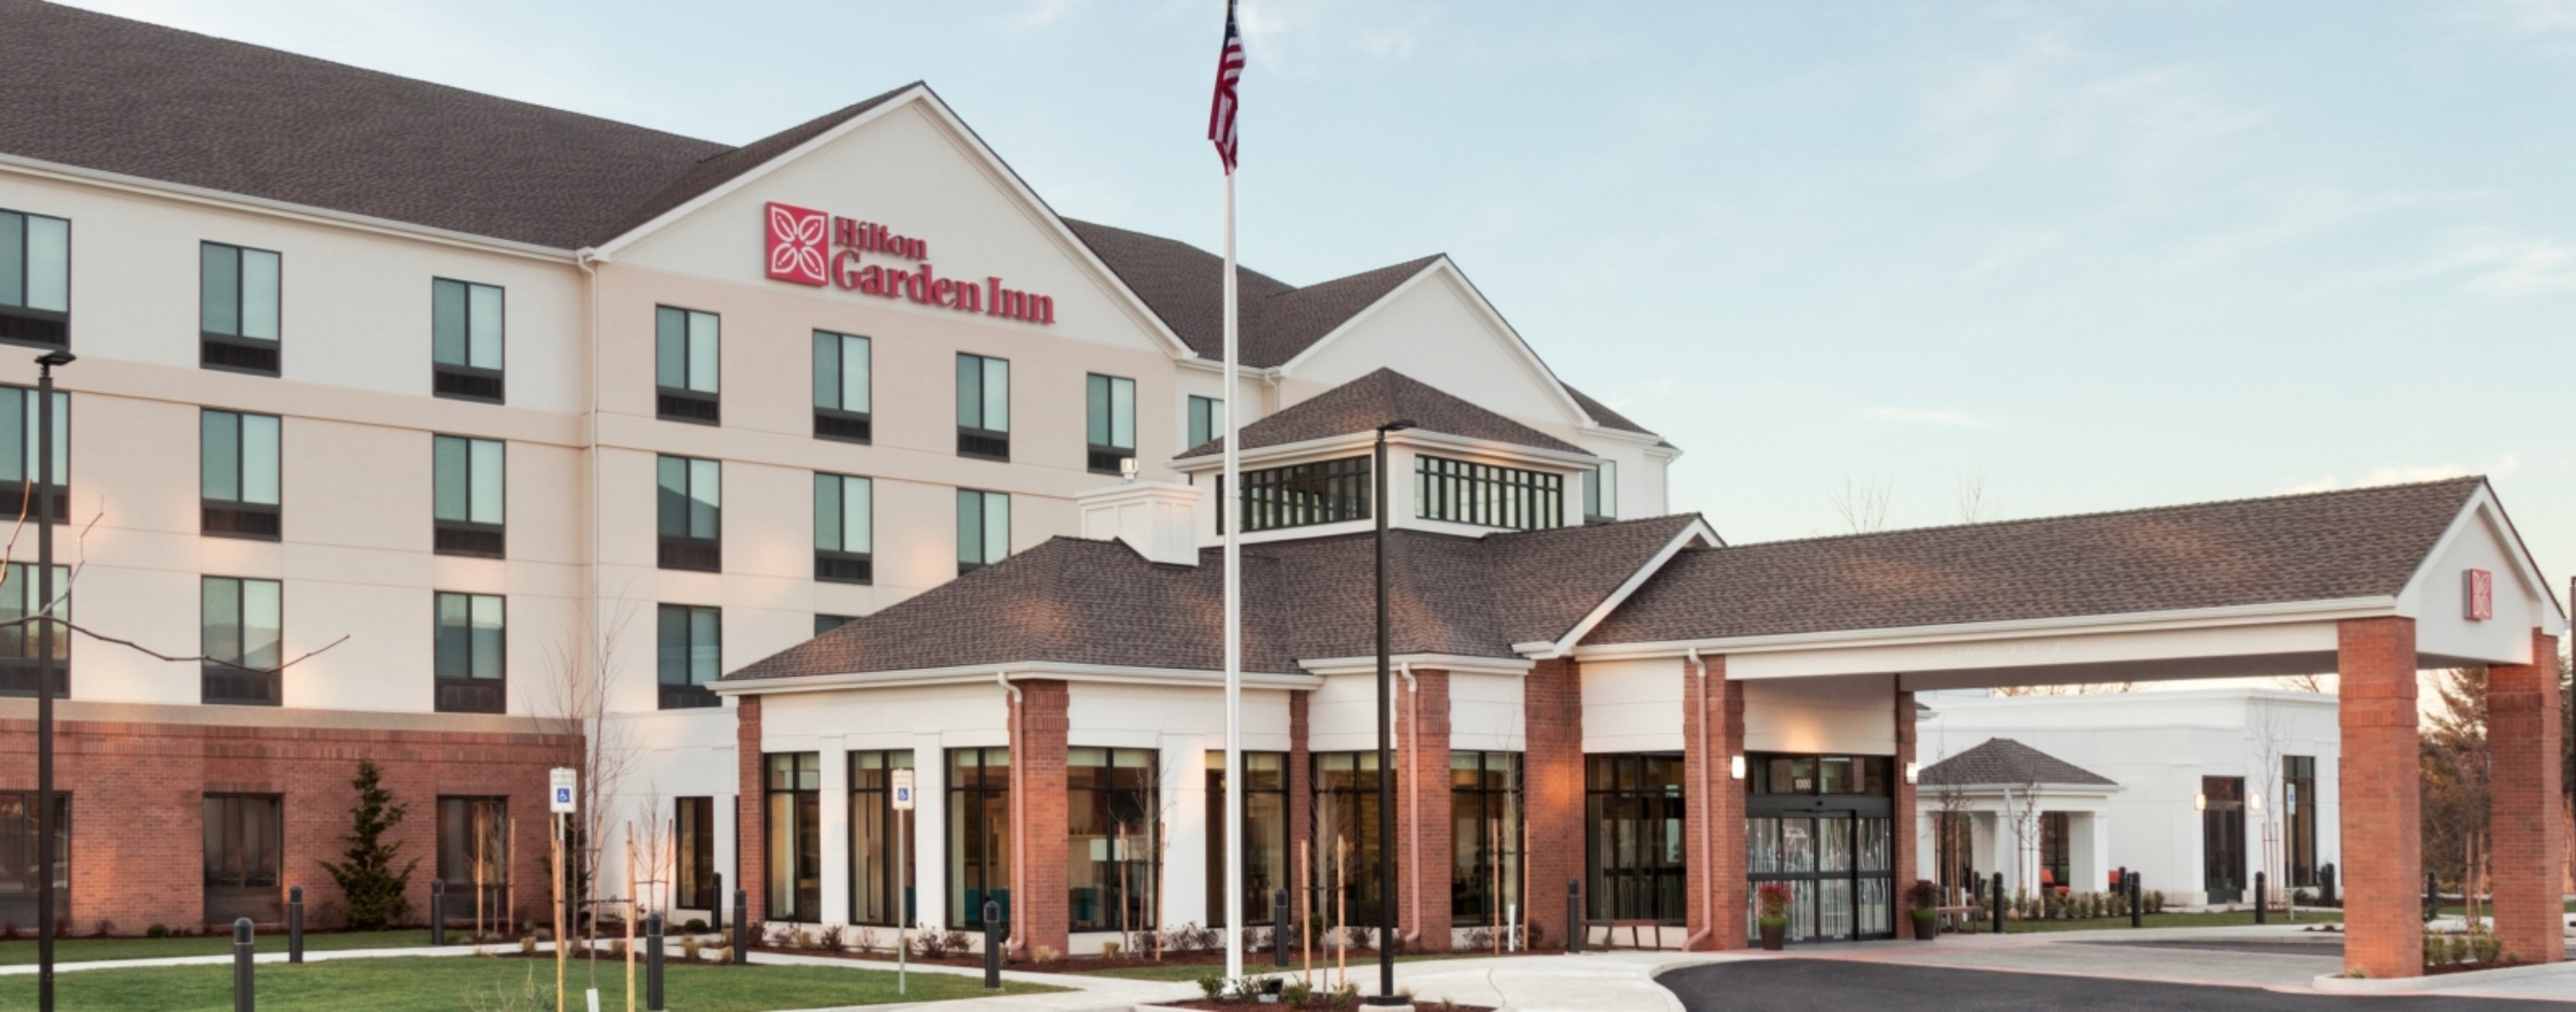 Hilton Garden Inn Hotel in Medford, Oregon